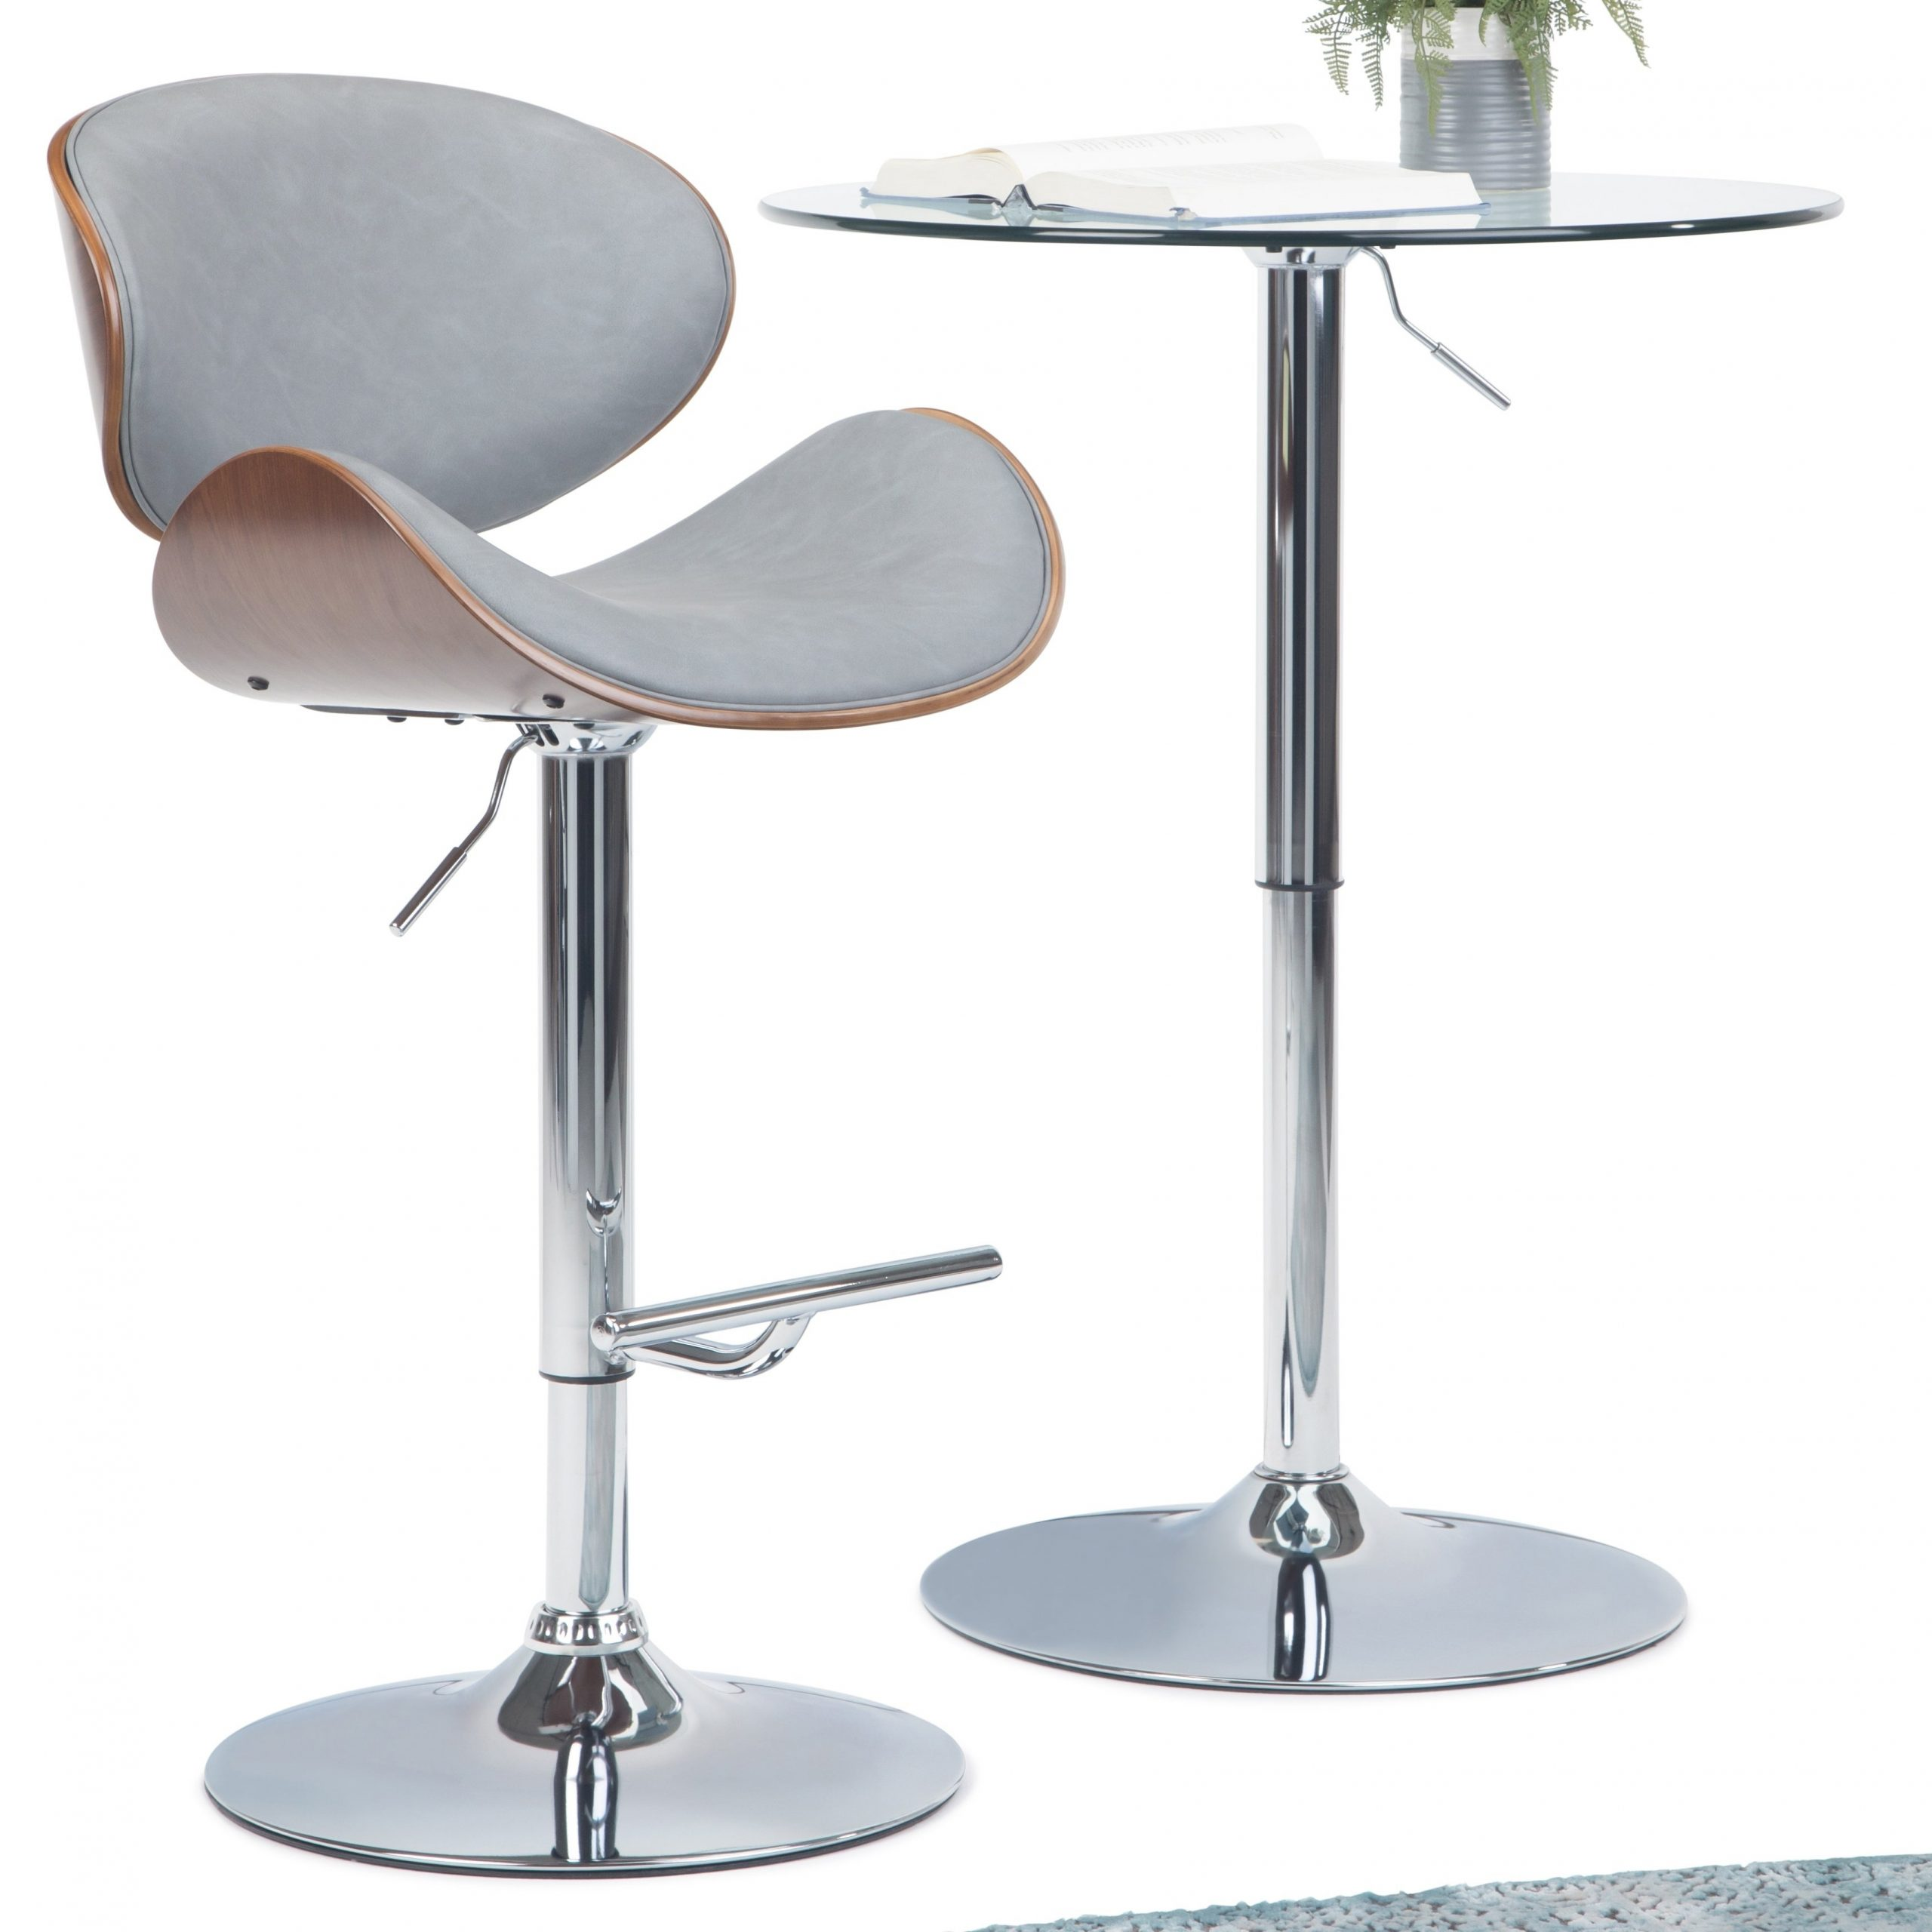 Wyndenhall Avondale Mid Century Modern Bentwood Adjustable Height Gas Lift Bar Stool – 21 W X 20 D X 45 H Intended For Current Avondale Counter Height Dining Tables (View 25 of 25)